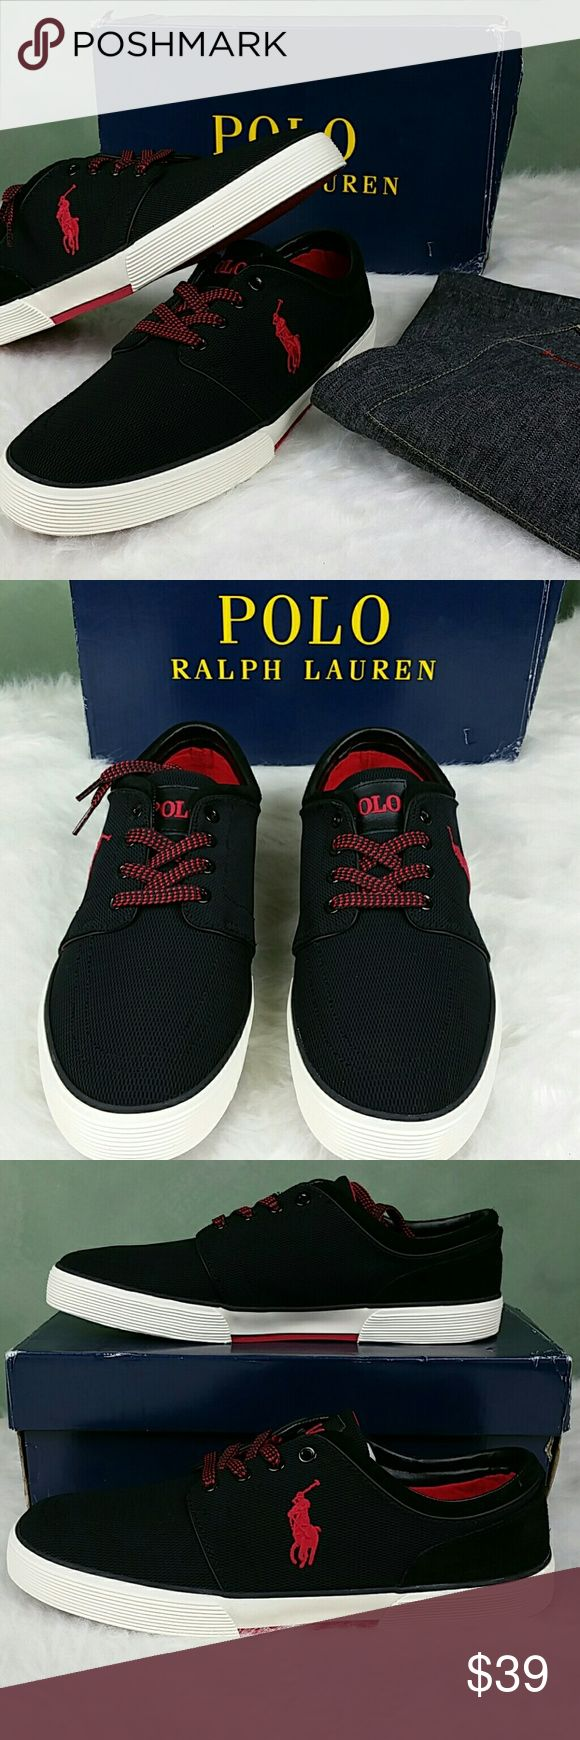 Polo by Ralph Lauren men's boat shoes size 11.5 Details to follow Polo by Ralph Lauren Shoes Boat Shoes